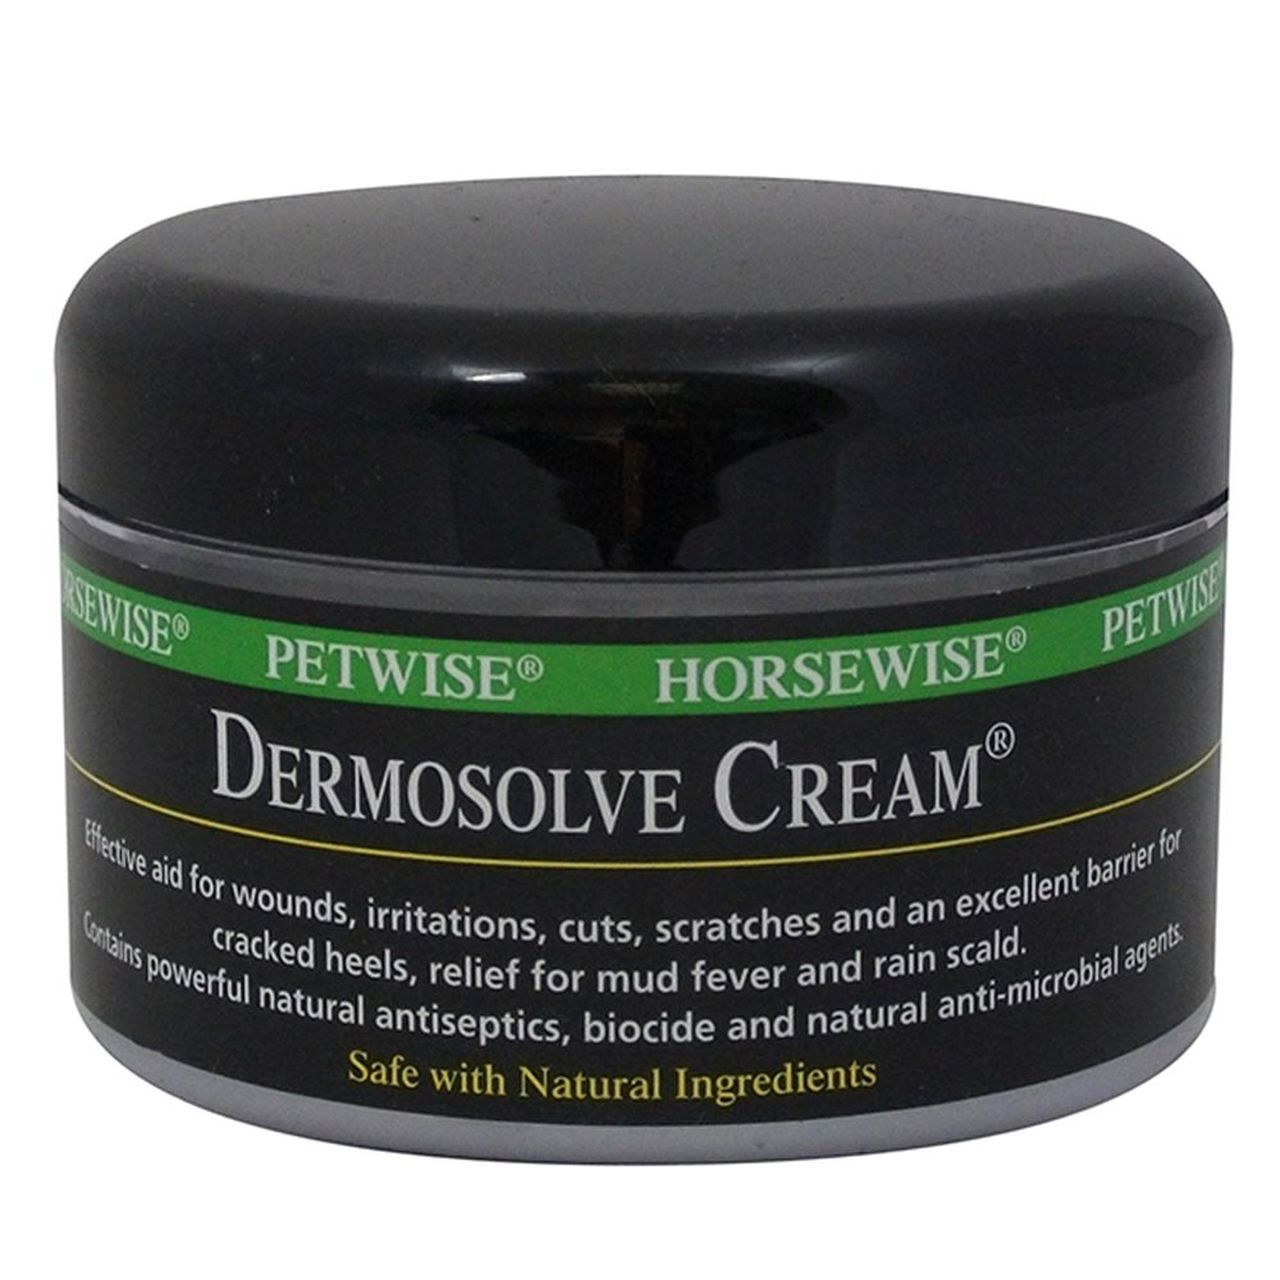 Horsewise Dermosolve Cream